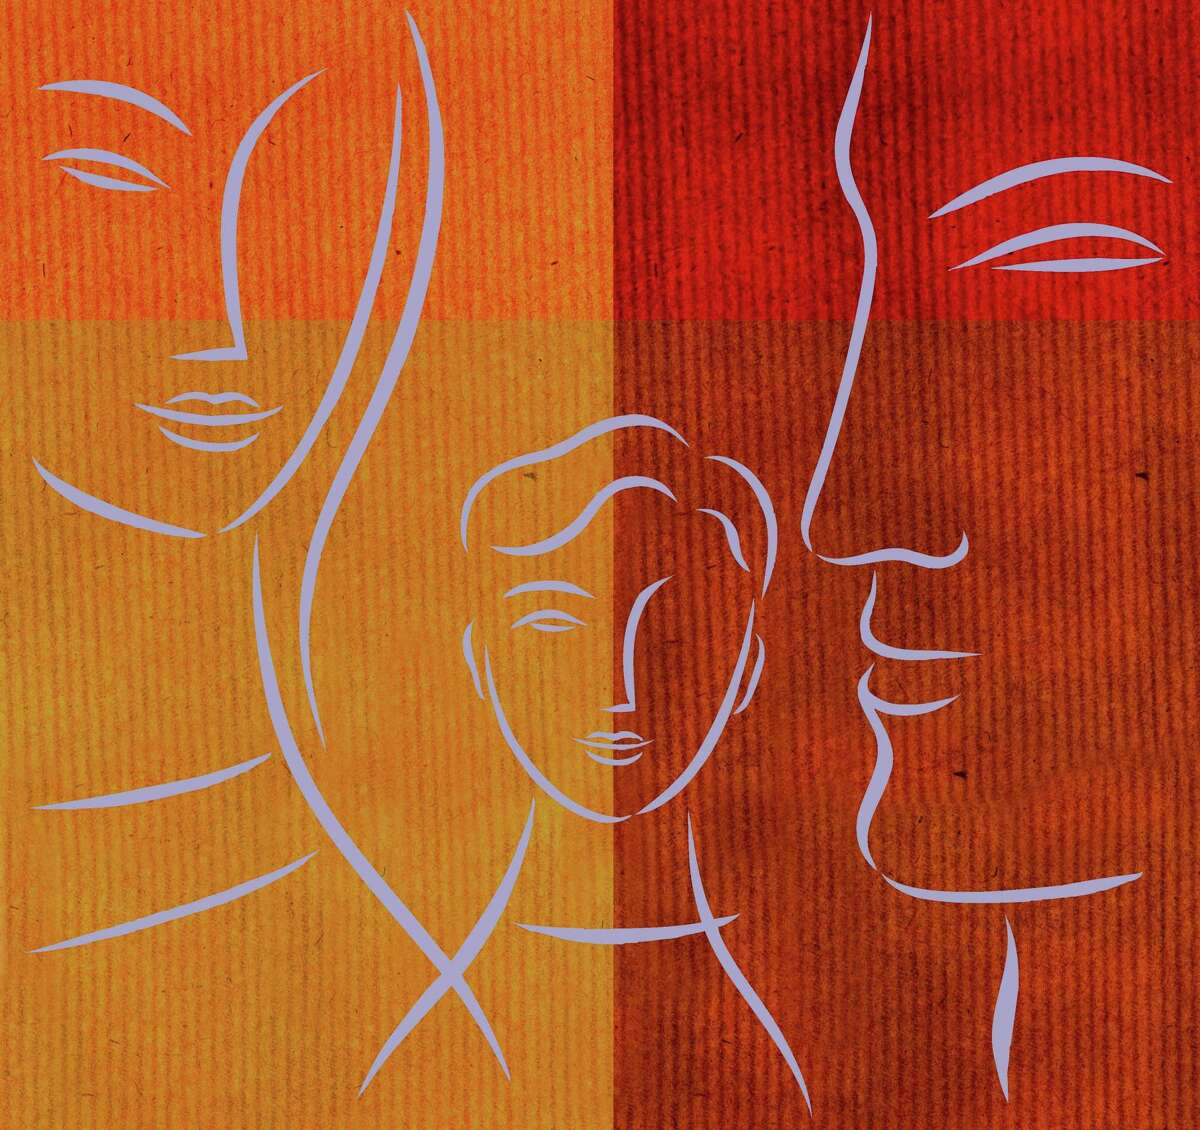 Family illustration: stylized faces on warm-colored corduroy-like material red, orange